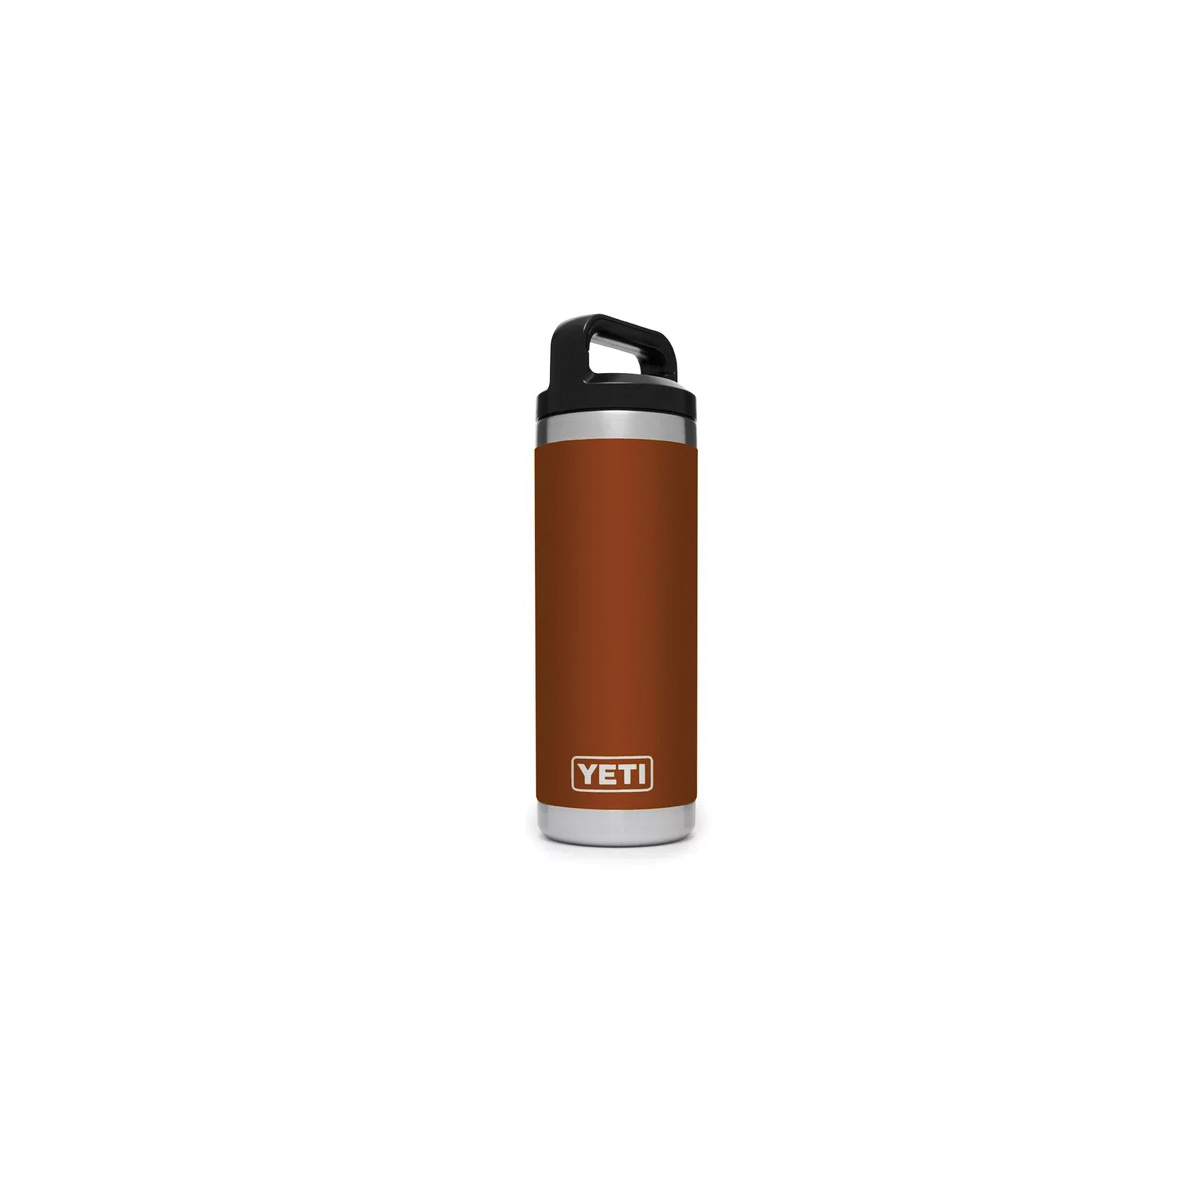 Picture of YETI Rambler 21071500143 Bottle With TripleHaul Cap, 18 oz Capacity, 18/8 Stainless Steel, Clay